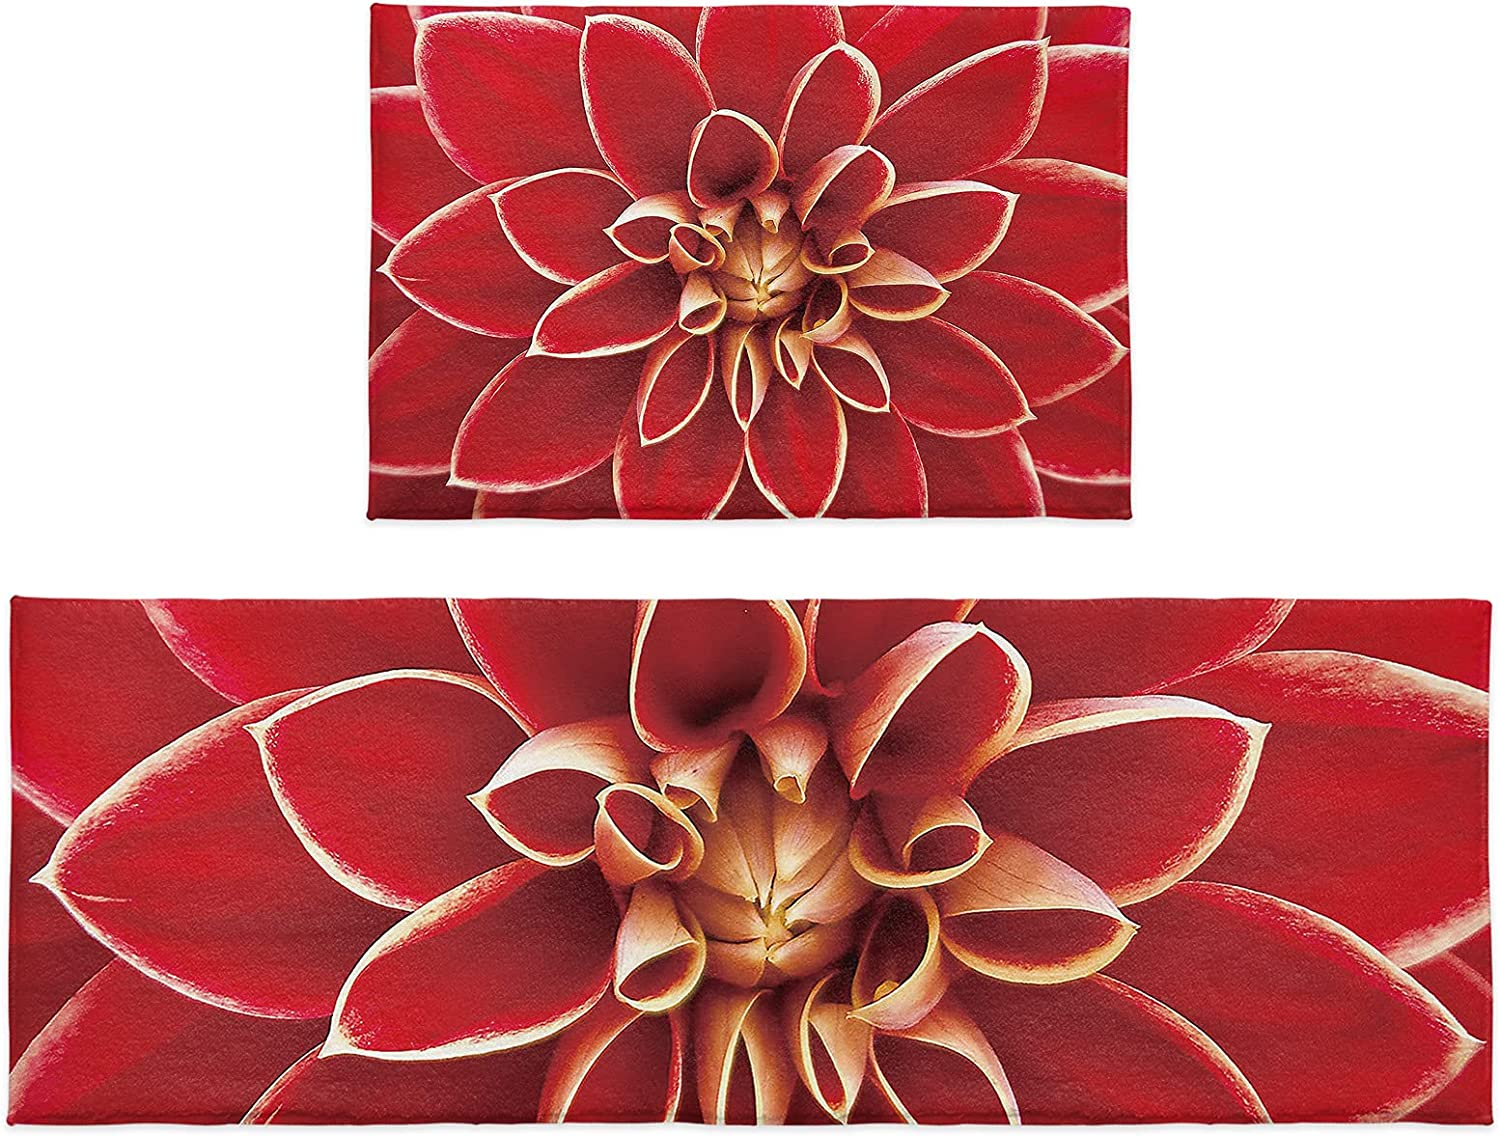 2 Ranking TOP1 Pieces Fluffy Plush Kitchen Rugs Flower Sh Blossom Red Max 80% OFF Vintage